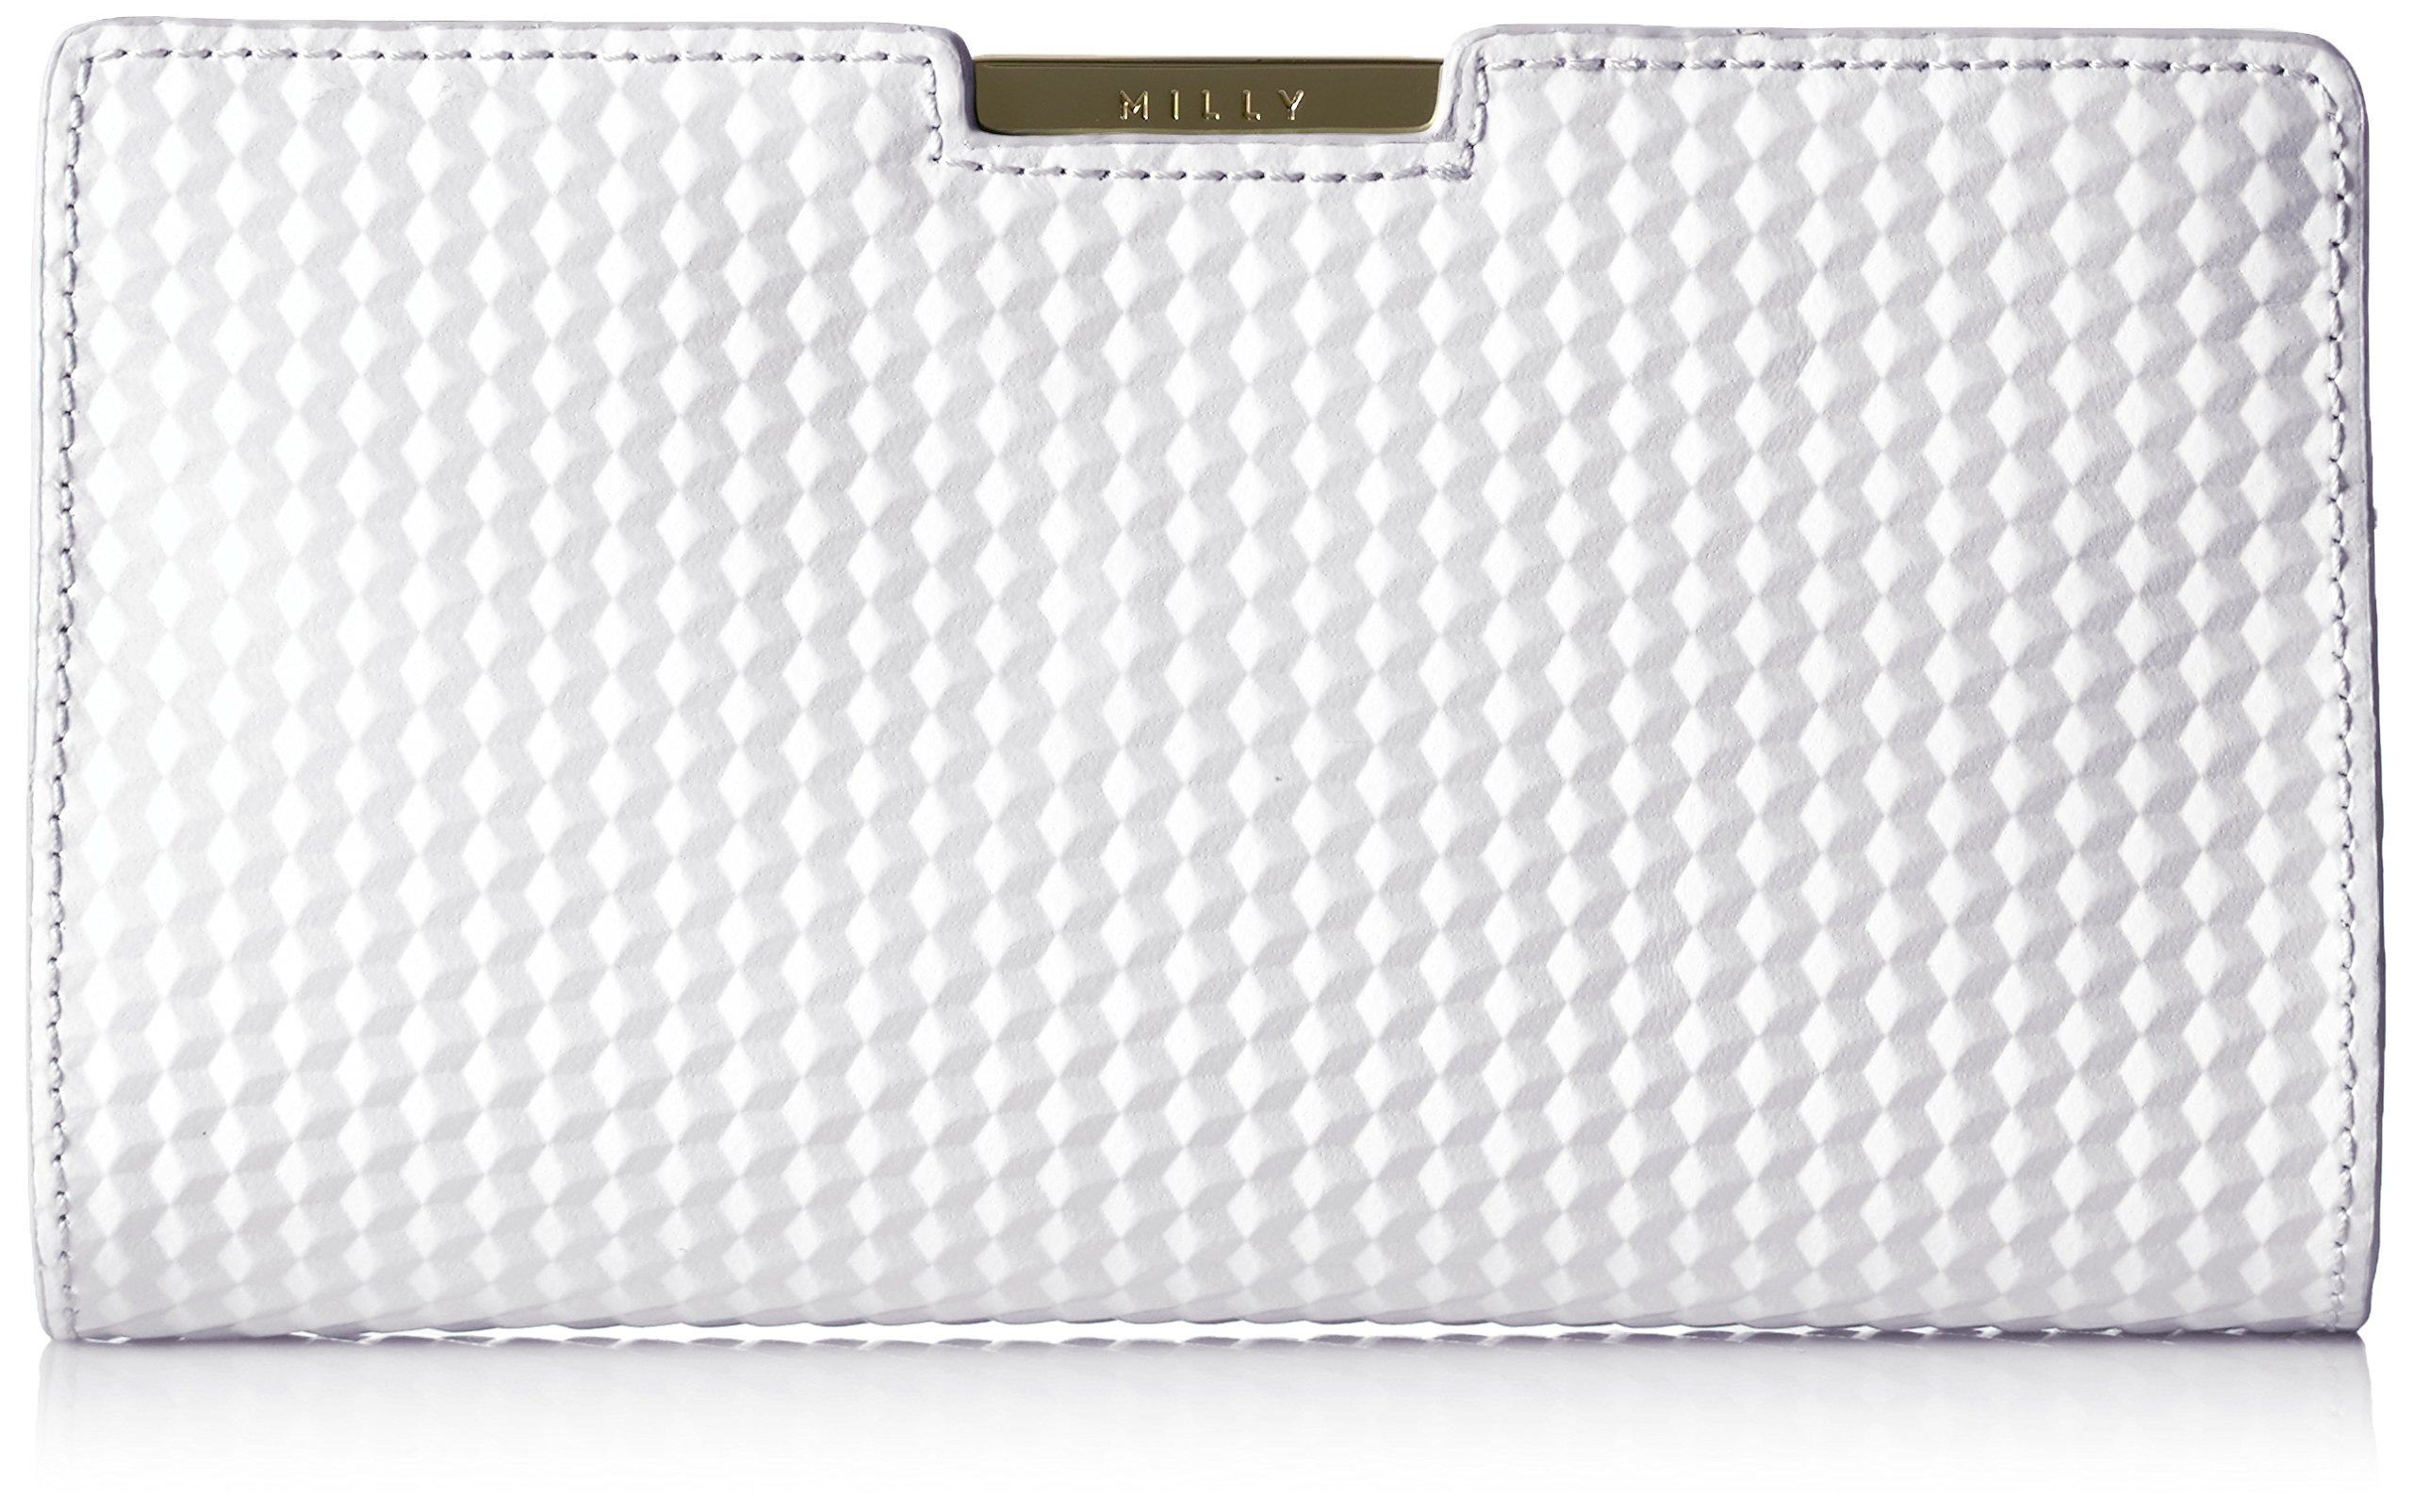 MILLY Geo Debossed Sm Frame Clutch, White by MILLY